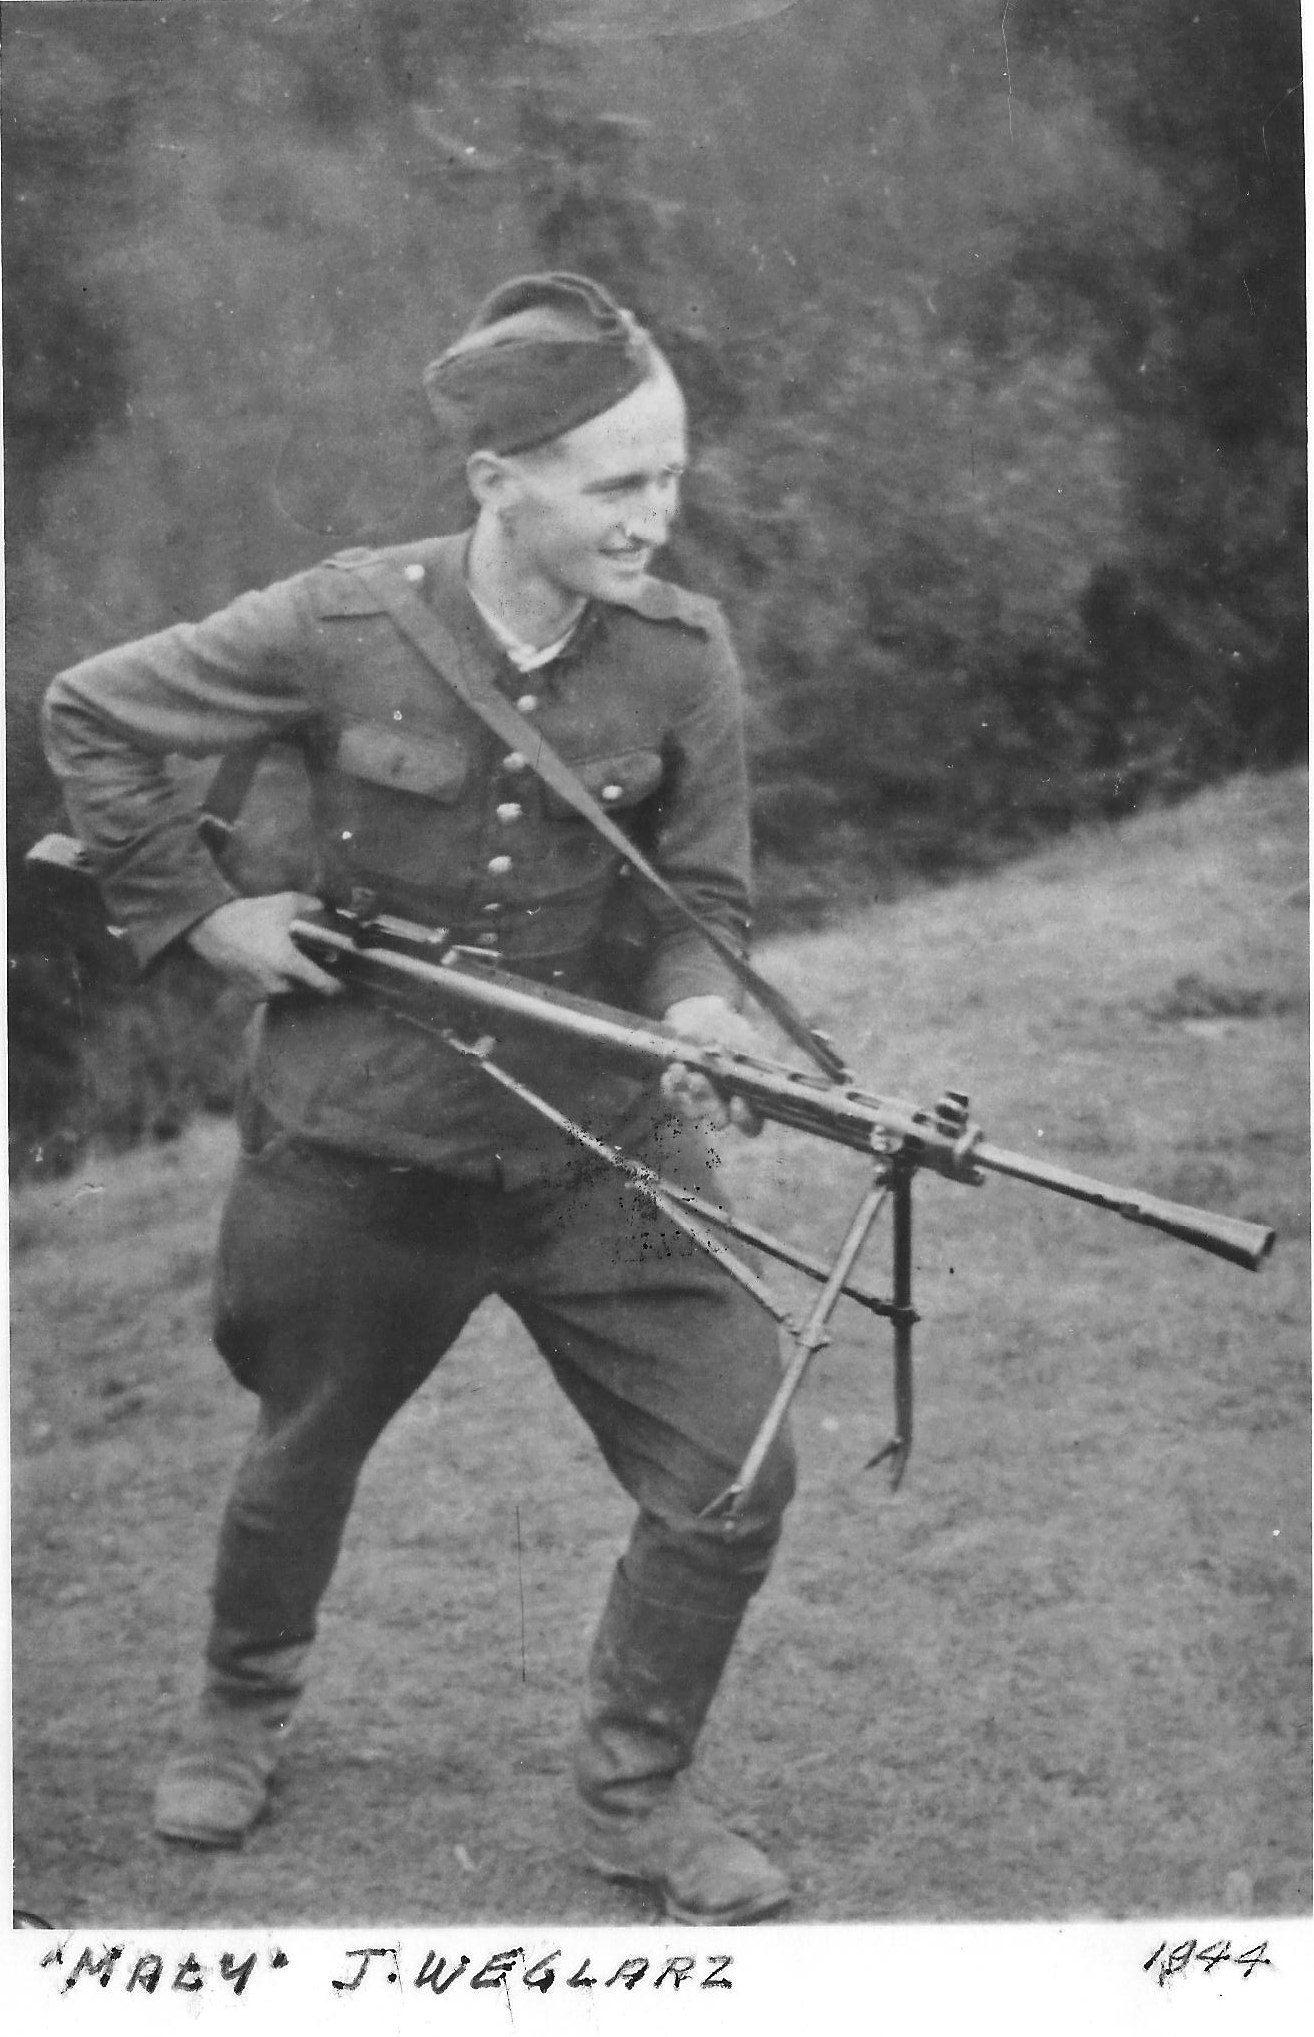 Photo: Józef Węglarz  ps Mały  With Rifle in 1944